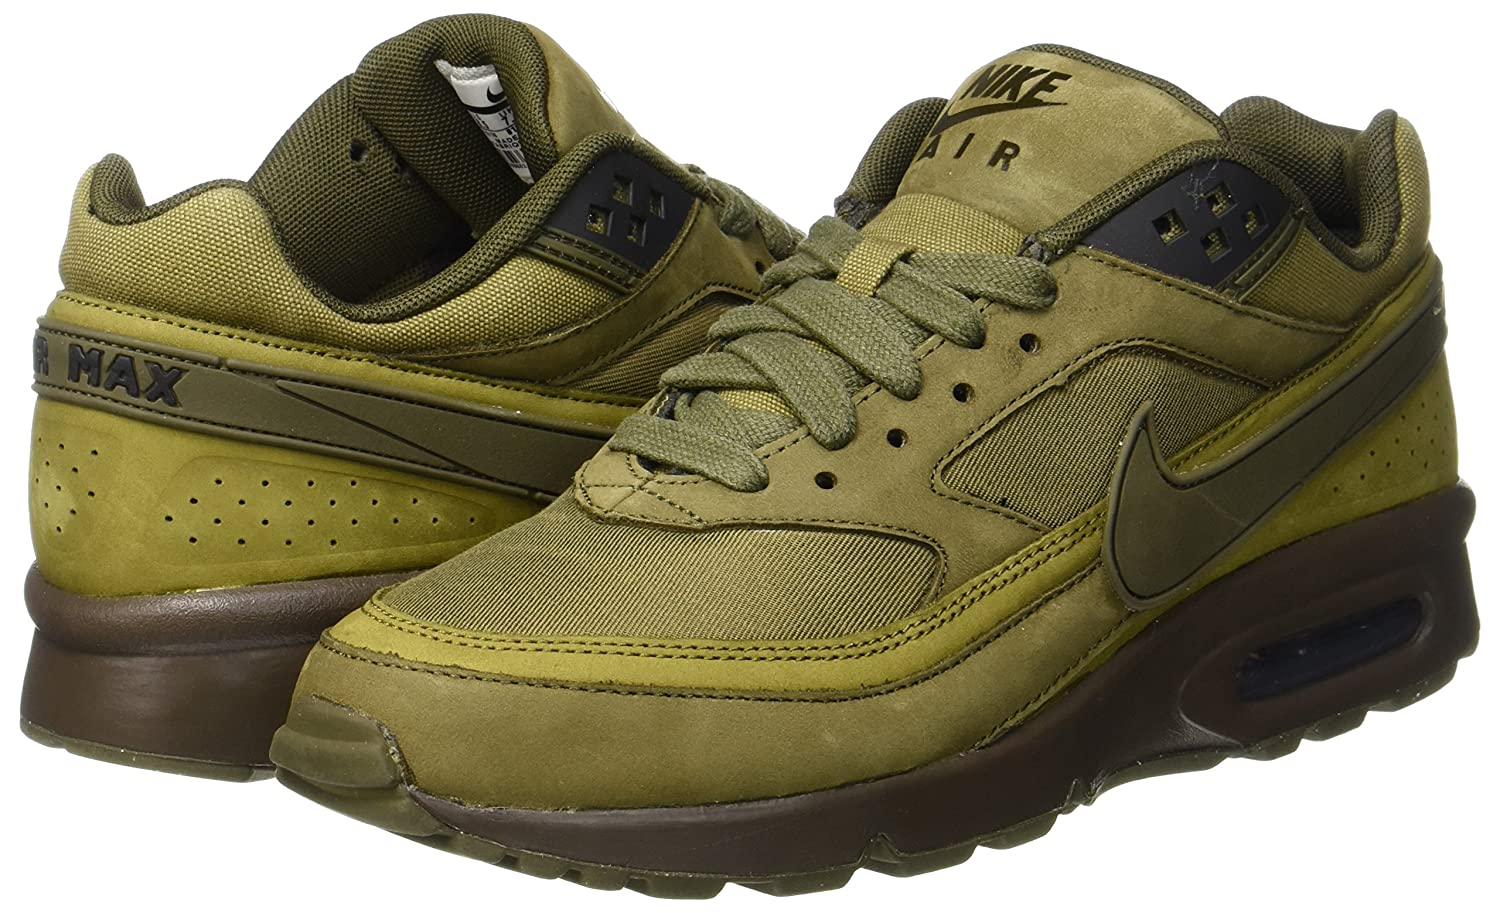 reputable site 609da b009e Nike AIR MAX BW Premium - Trainers, Men, Green - (Dark Loden/Dark  Loden-Olive Flak-Black), 40: Amazon.co.uk: Shoes & Bags